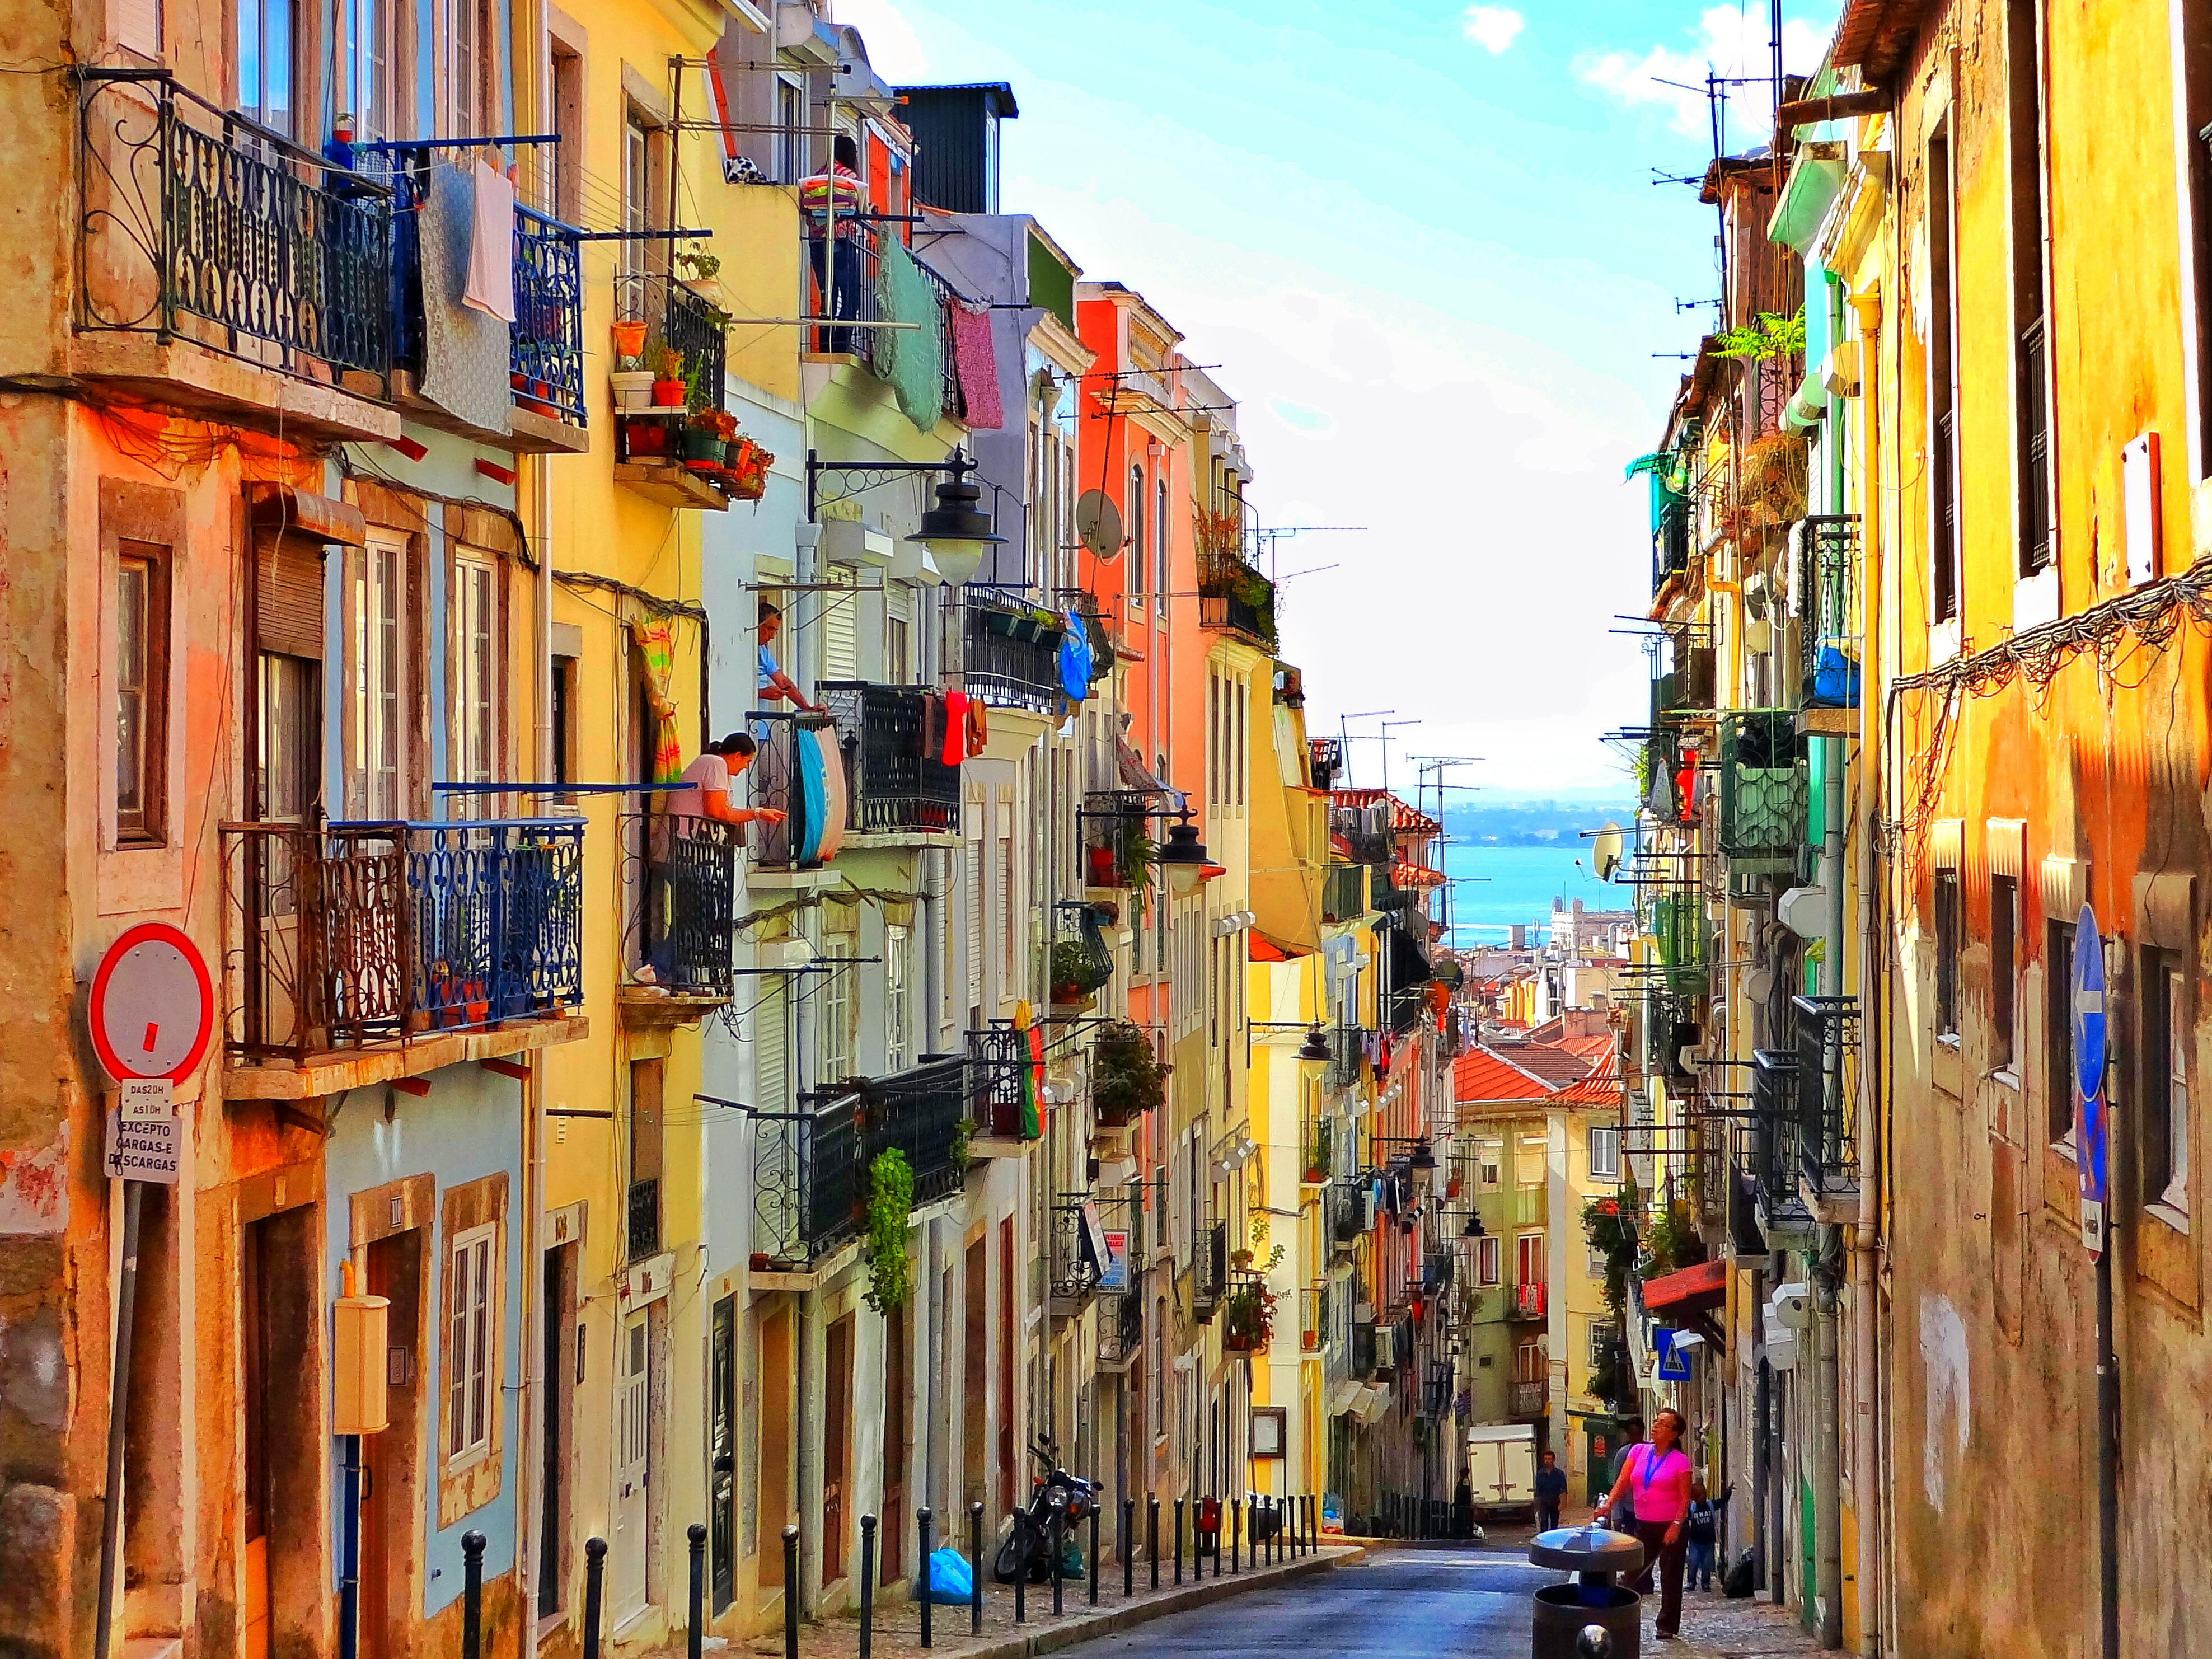 Colorful Street In Lisbon Portugal 4k Ultra HD Wallpaper And